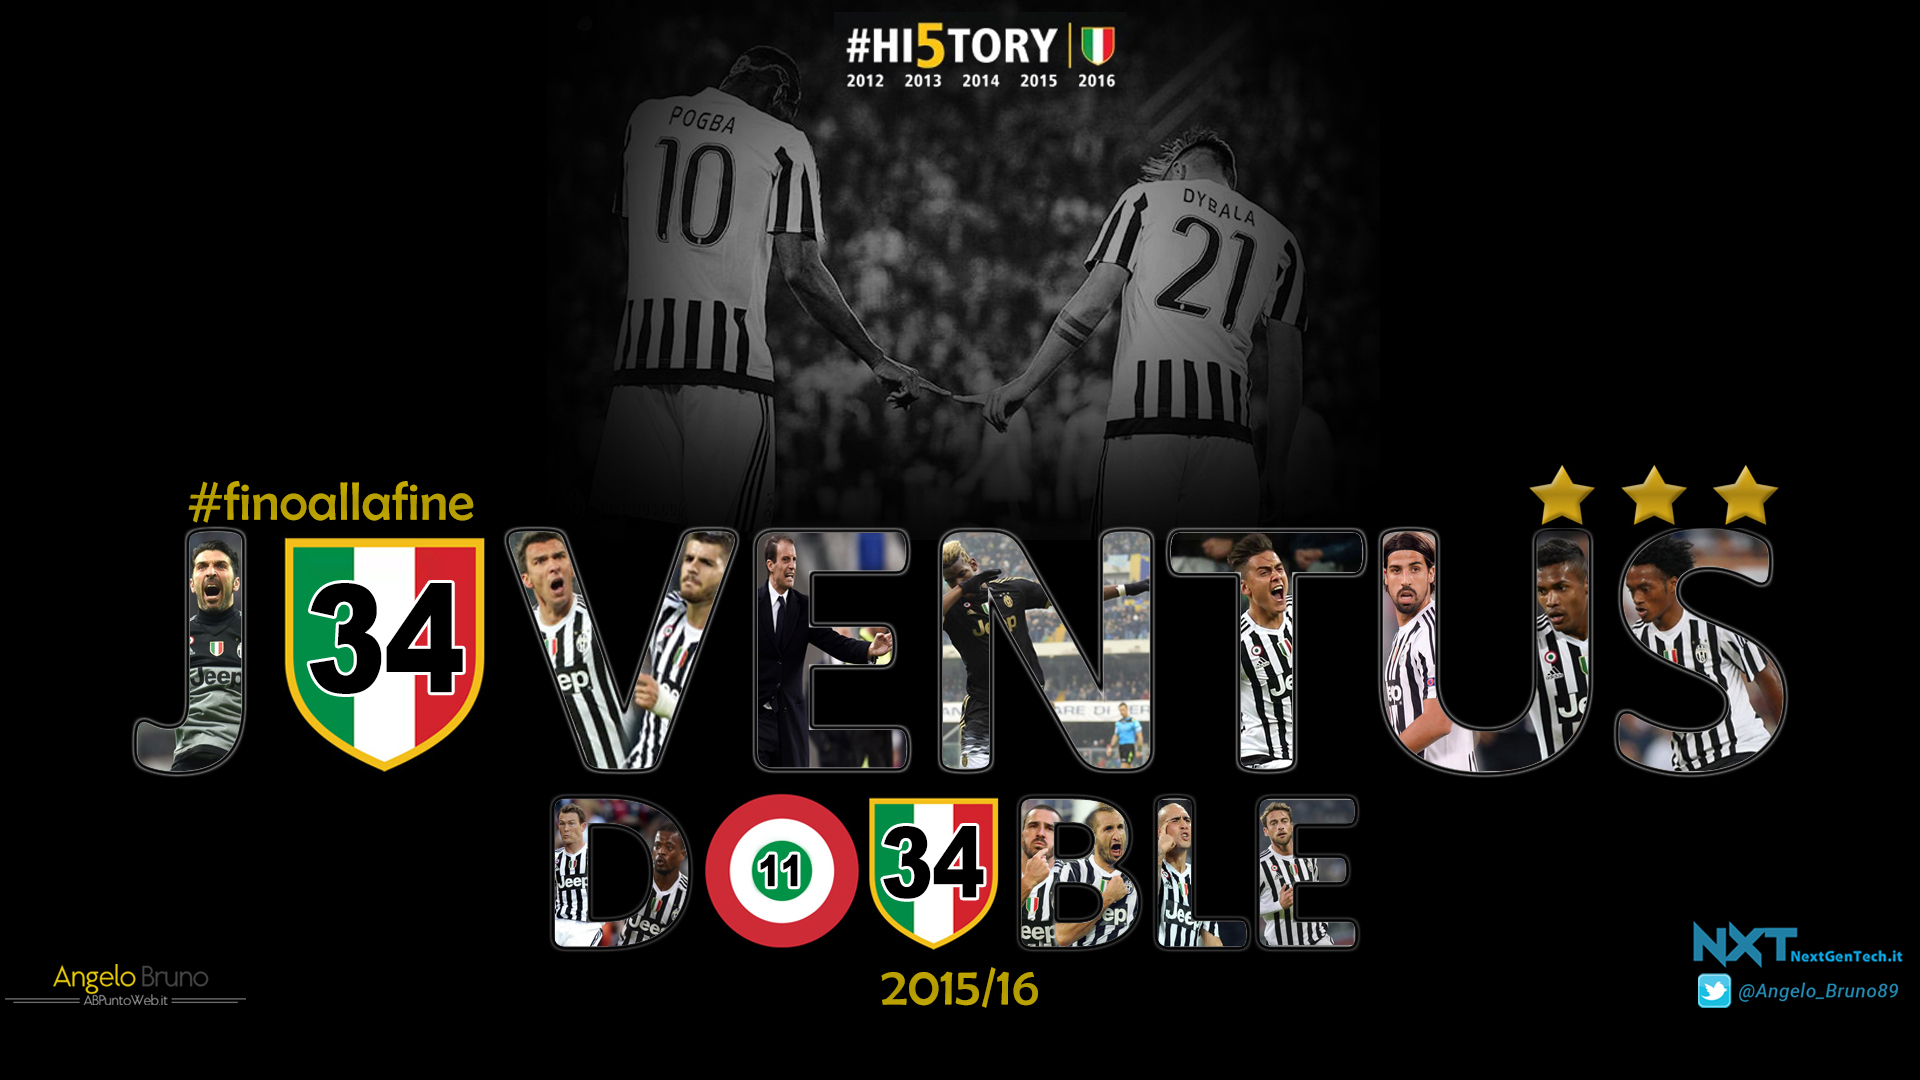 Juventus wallpaper 2015 16 full hd angelo bruno abpuntoweb for Sfondo juventus hd